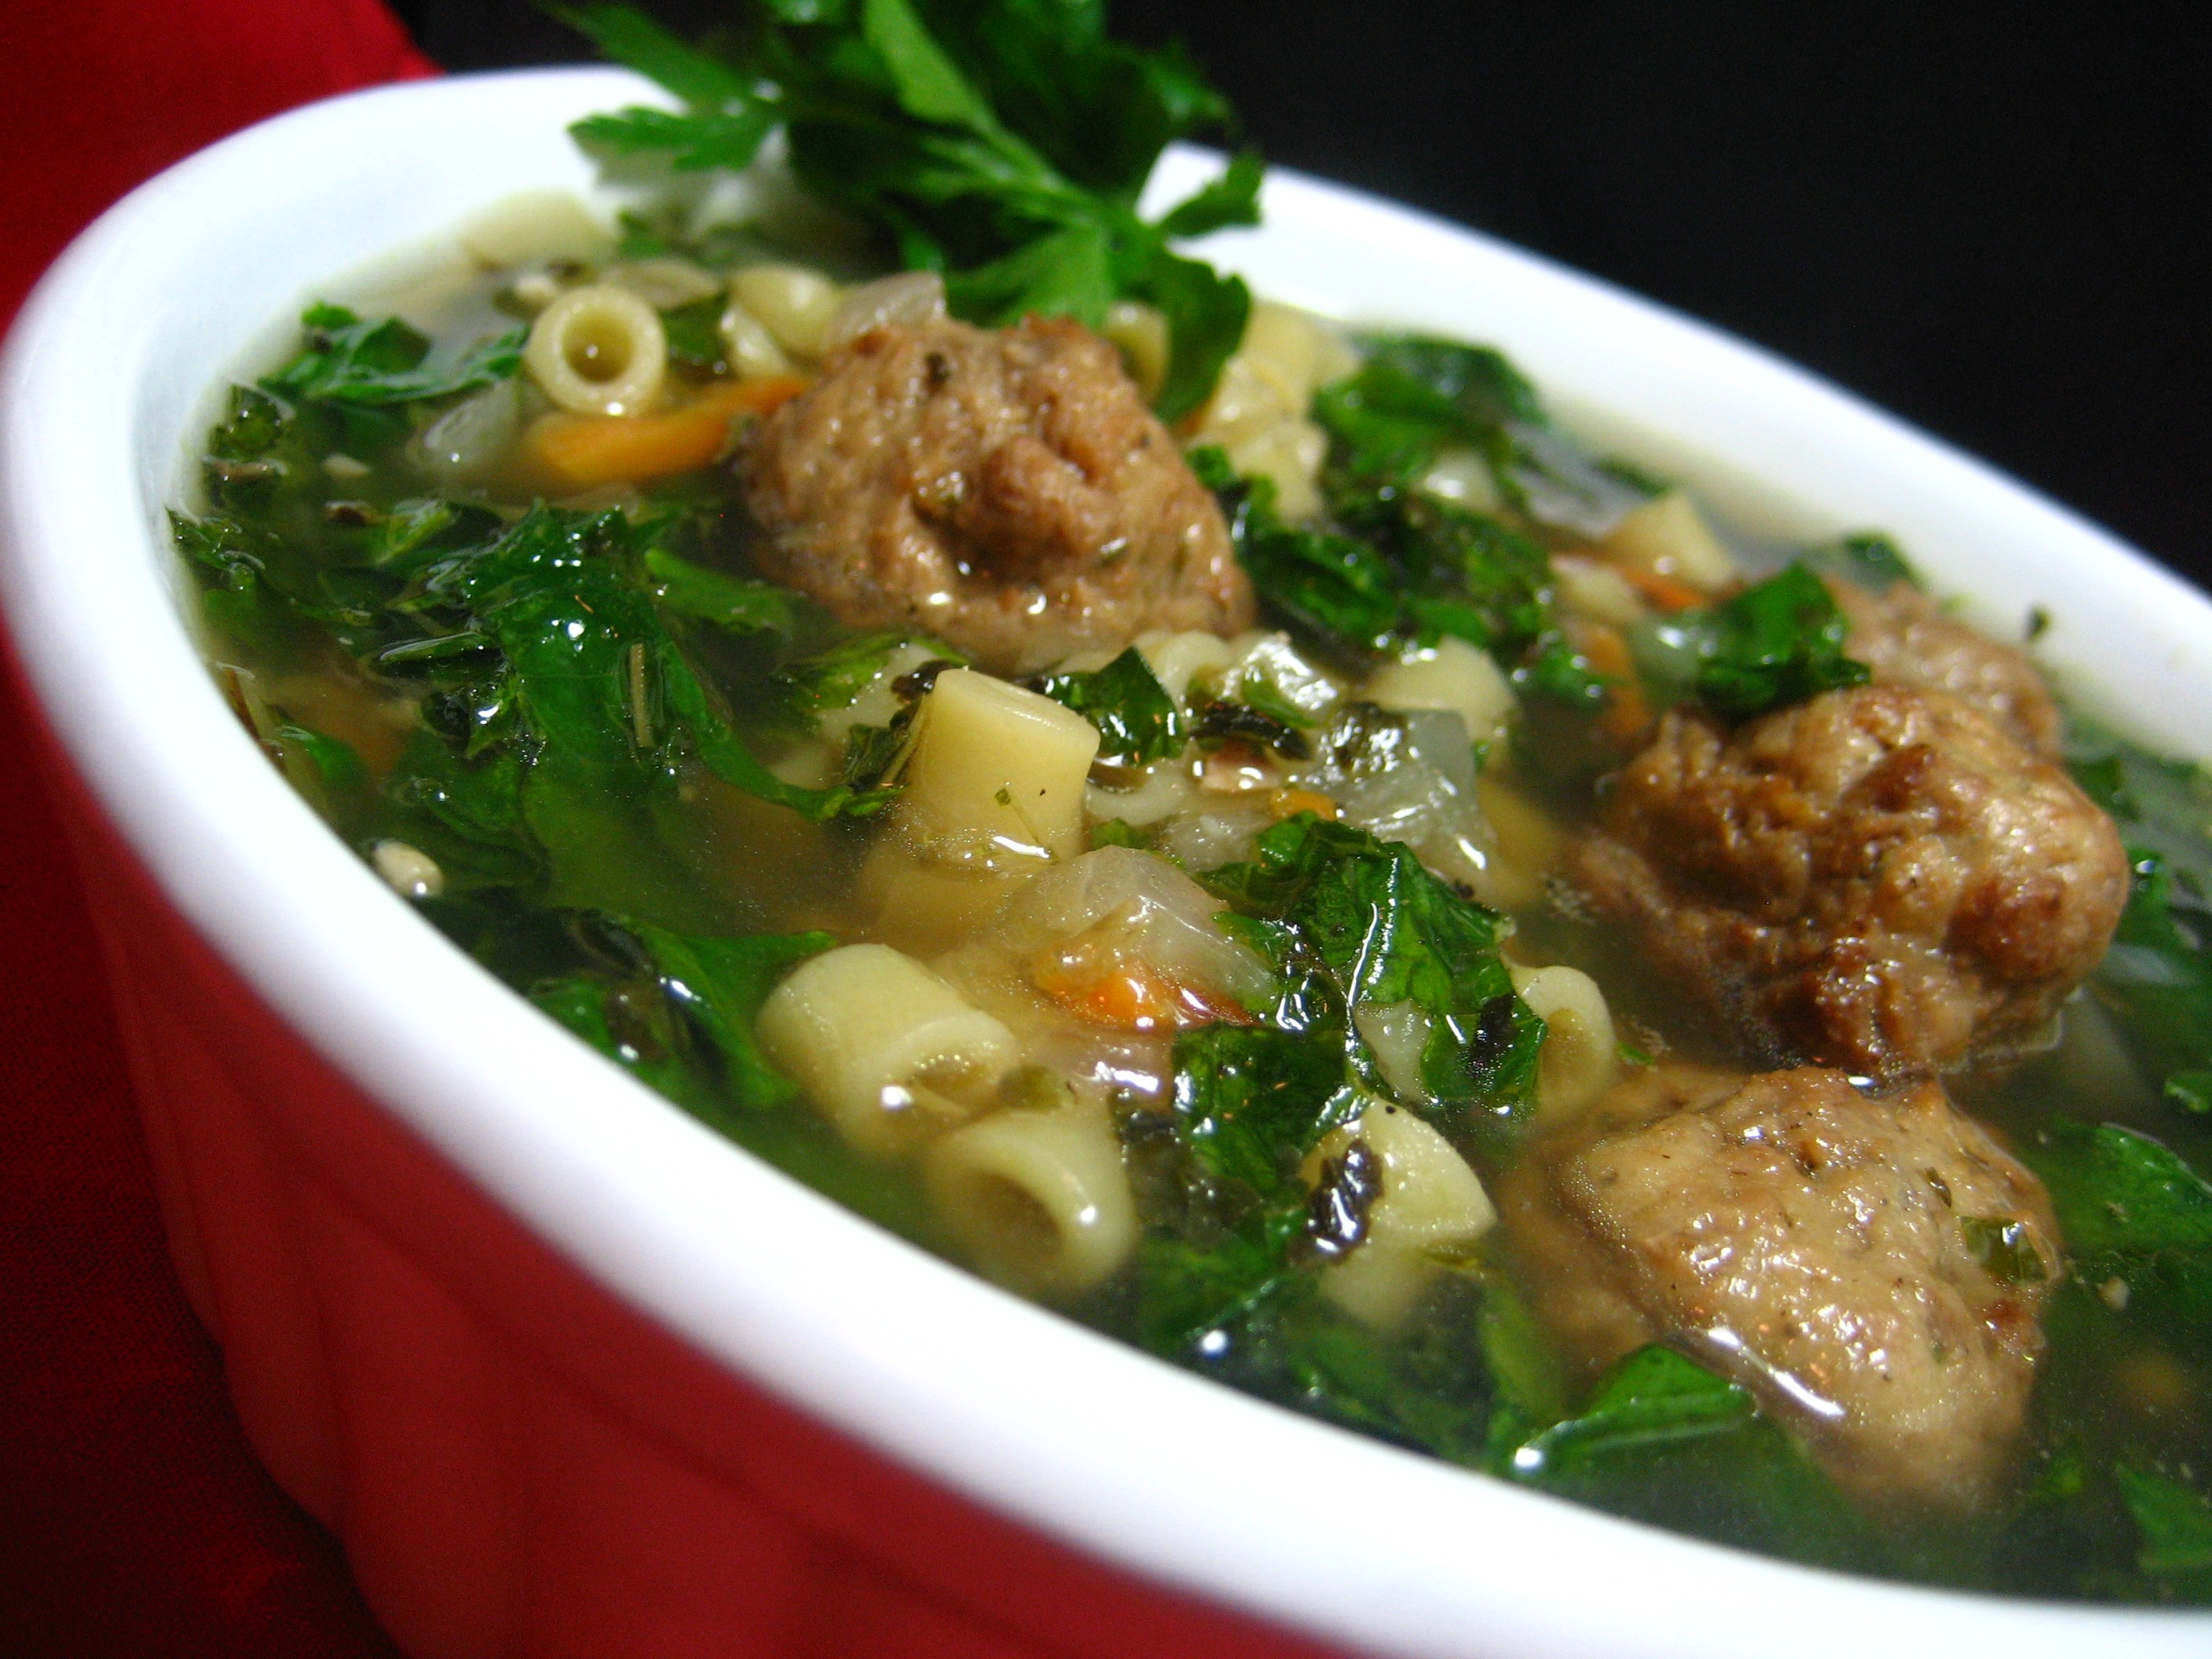 California Italian Wedding Soup Recipe - Glorious Soup Recipes